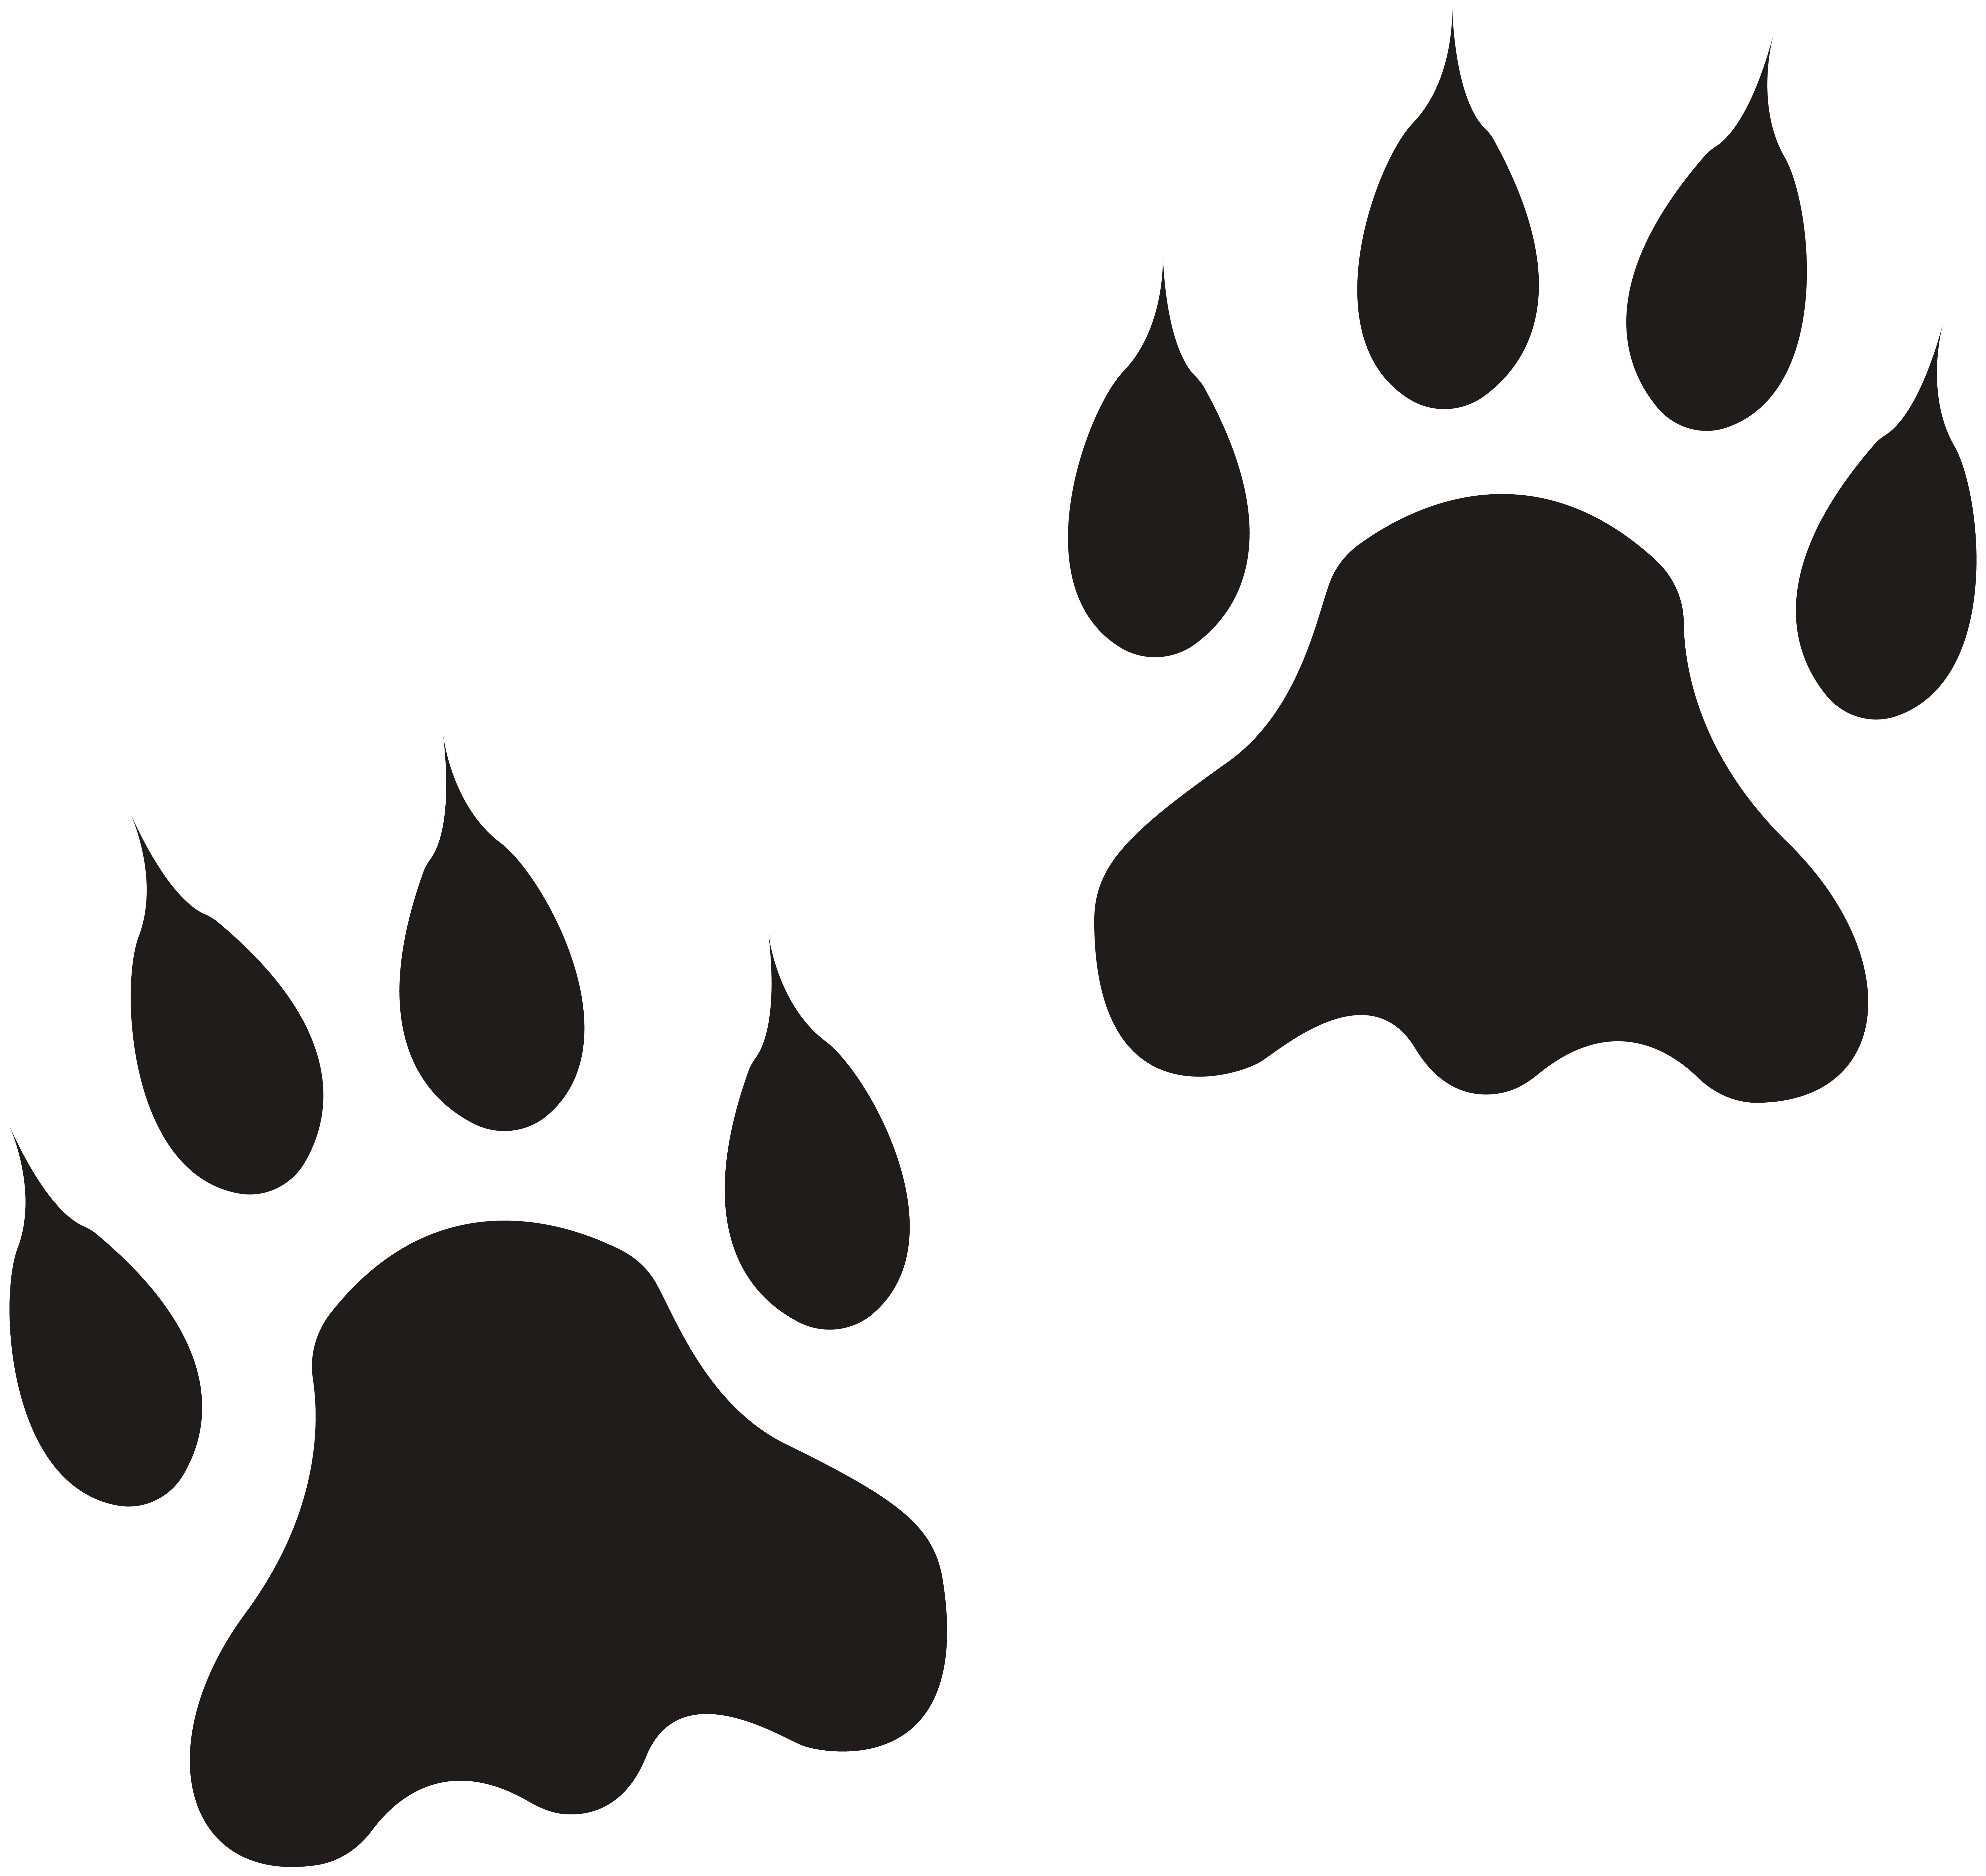 Paw clip art transparent background. Lion paws image gallery